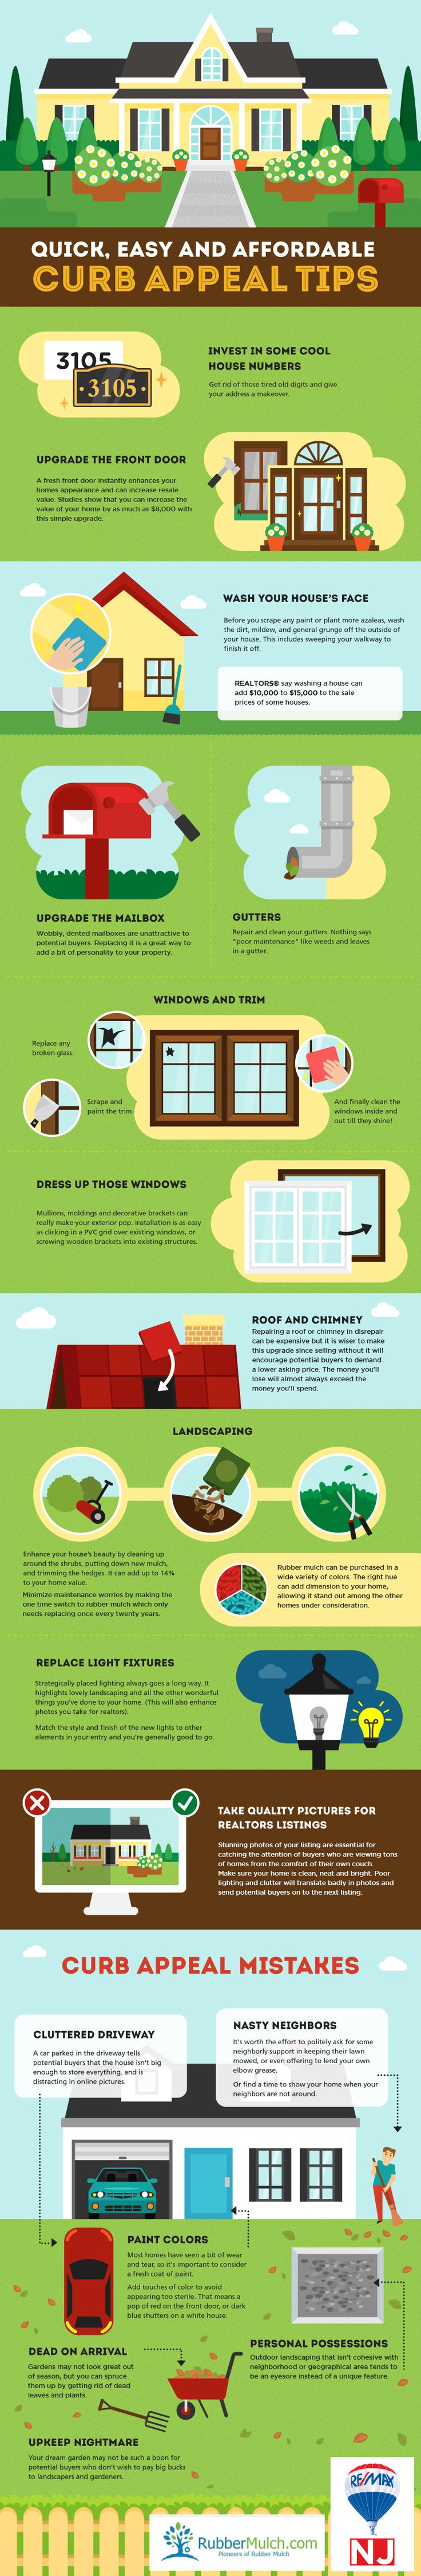 Looking to earn some extra home improvement points? RubberMulch teamed up with Remax-NJ to help you achieve curb appeal via an infographic filled with expert tips!  Check it out, on the blog: http://rubbermulch.com/blogs/rubbermulch/80959681-curb-appeal-infographic